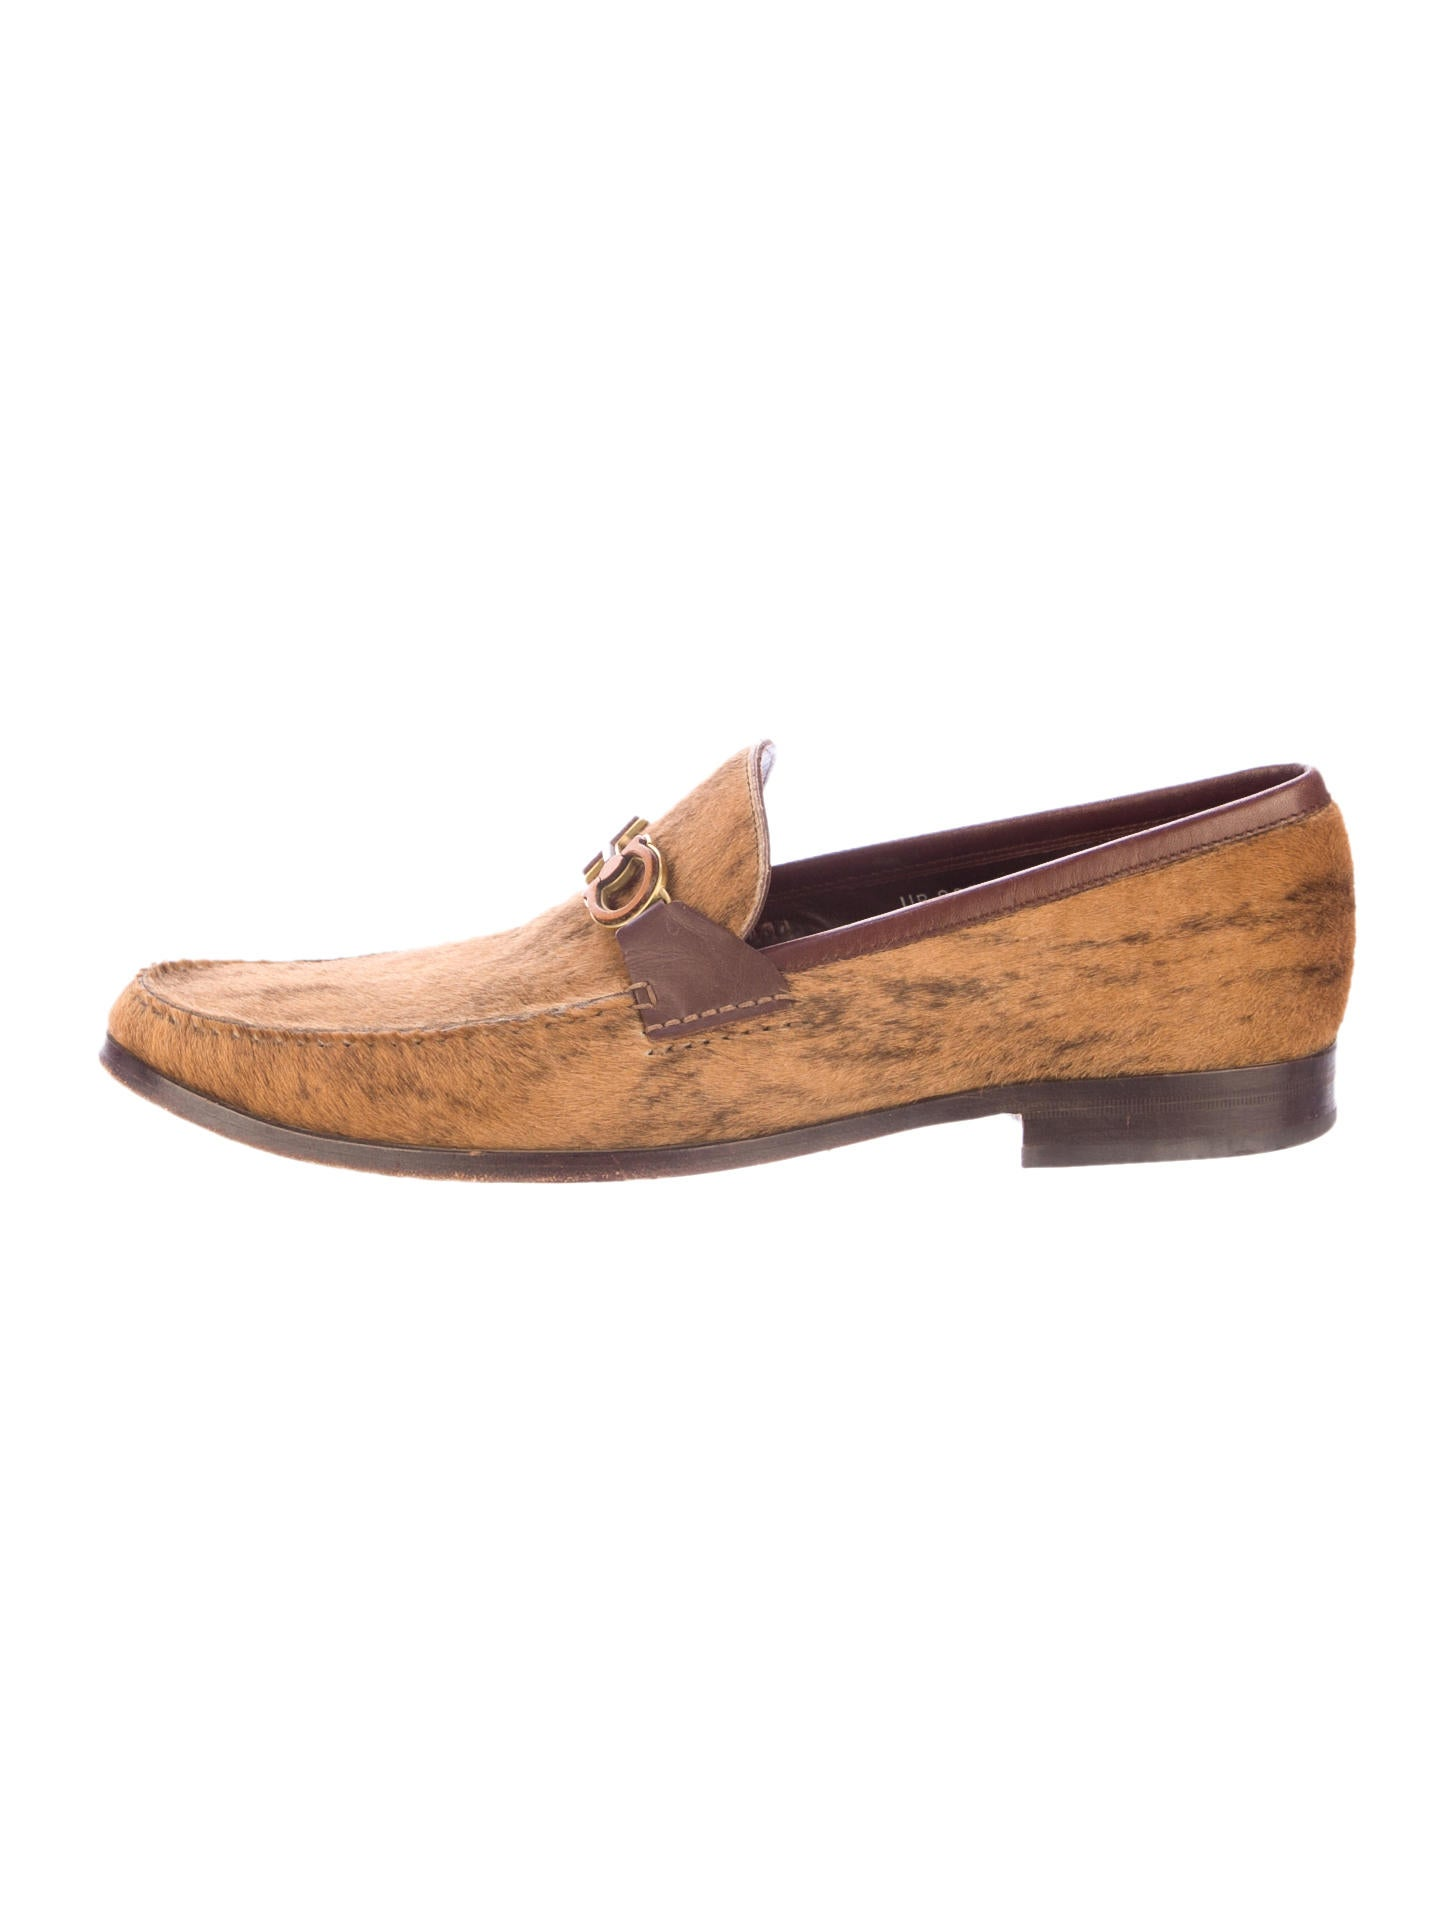 sale visit new Salvatore Ferragamo Ponyhair Gancini Loafers affordable sale footlocker pictures buy cheap Inexpensive store with big discount uySnosoTxh